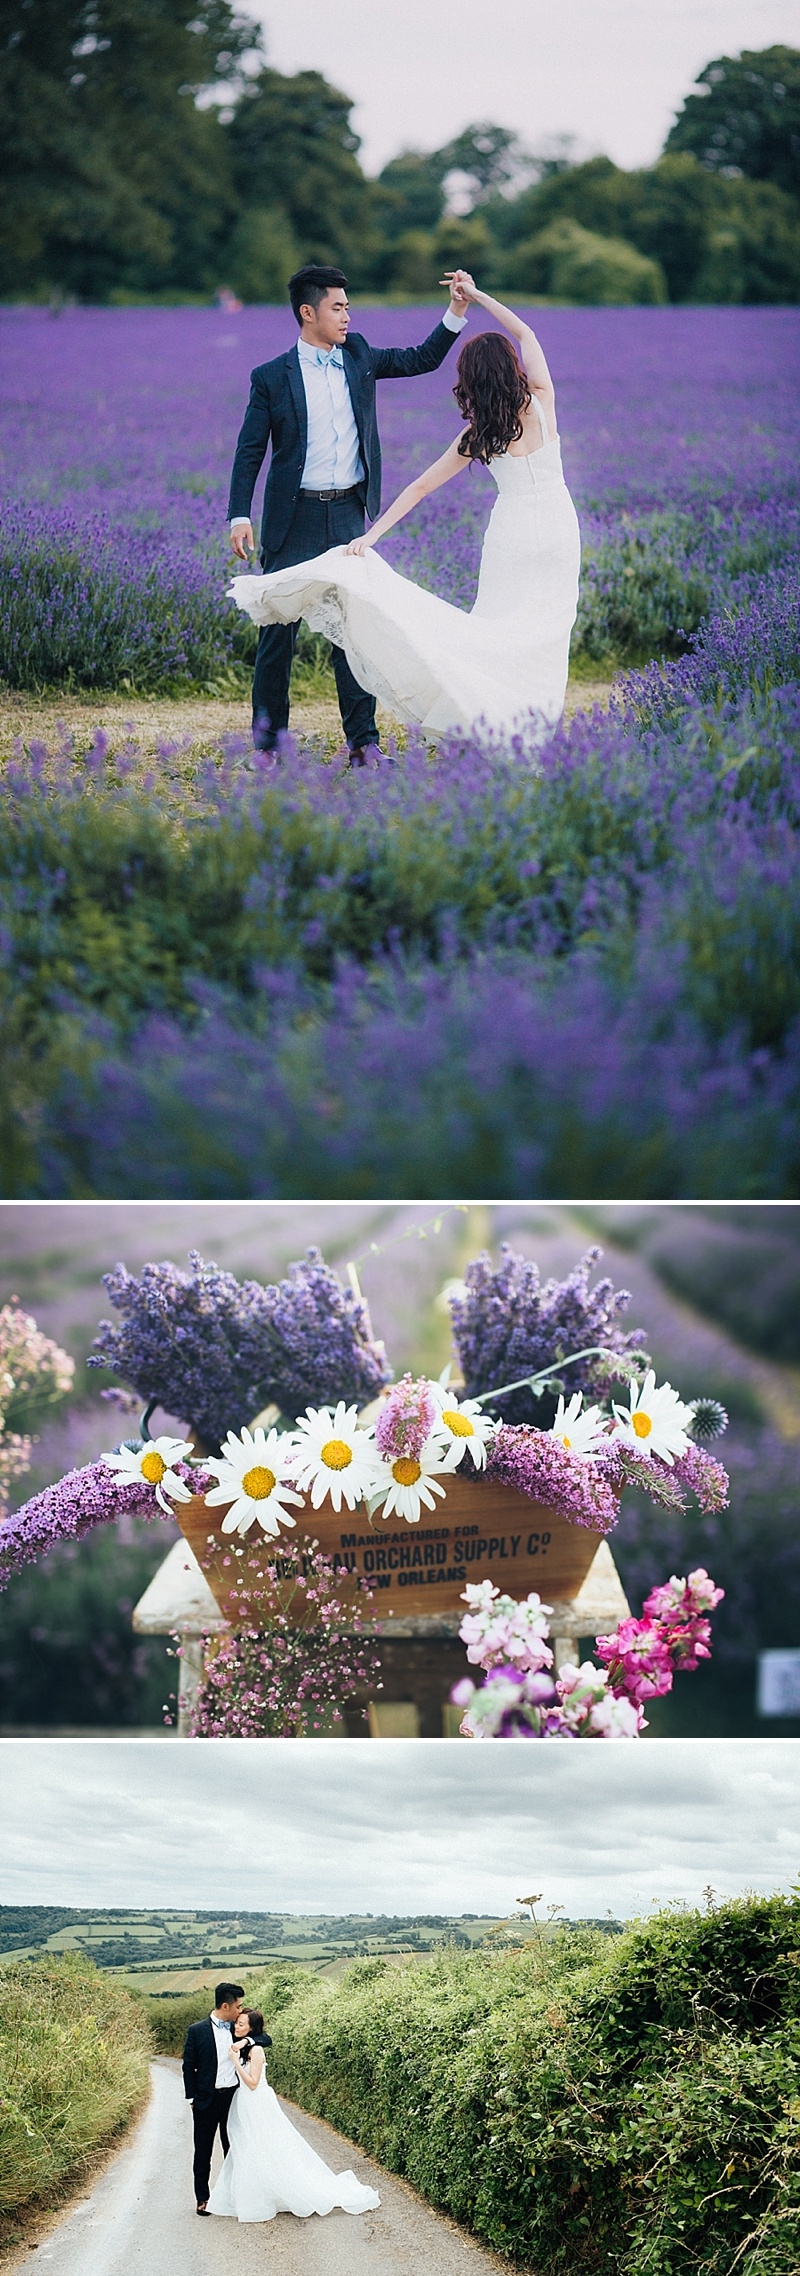 Hong kong pre wedding overseas surrey mayfield lavender styled london wedding photography